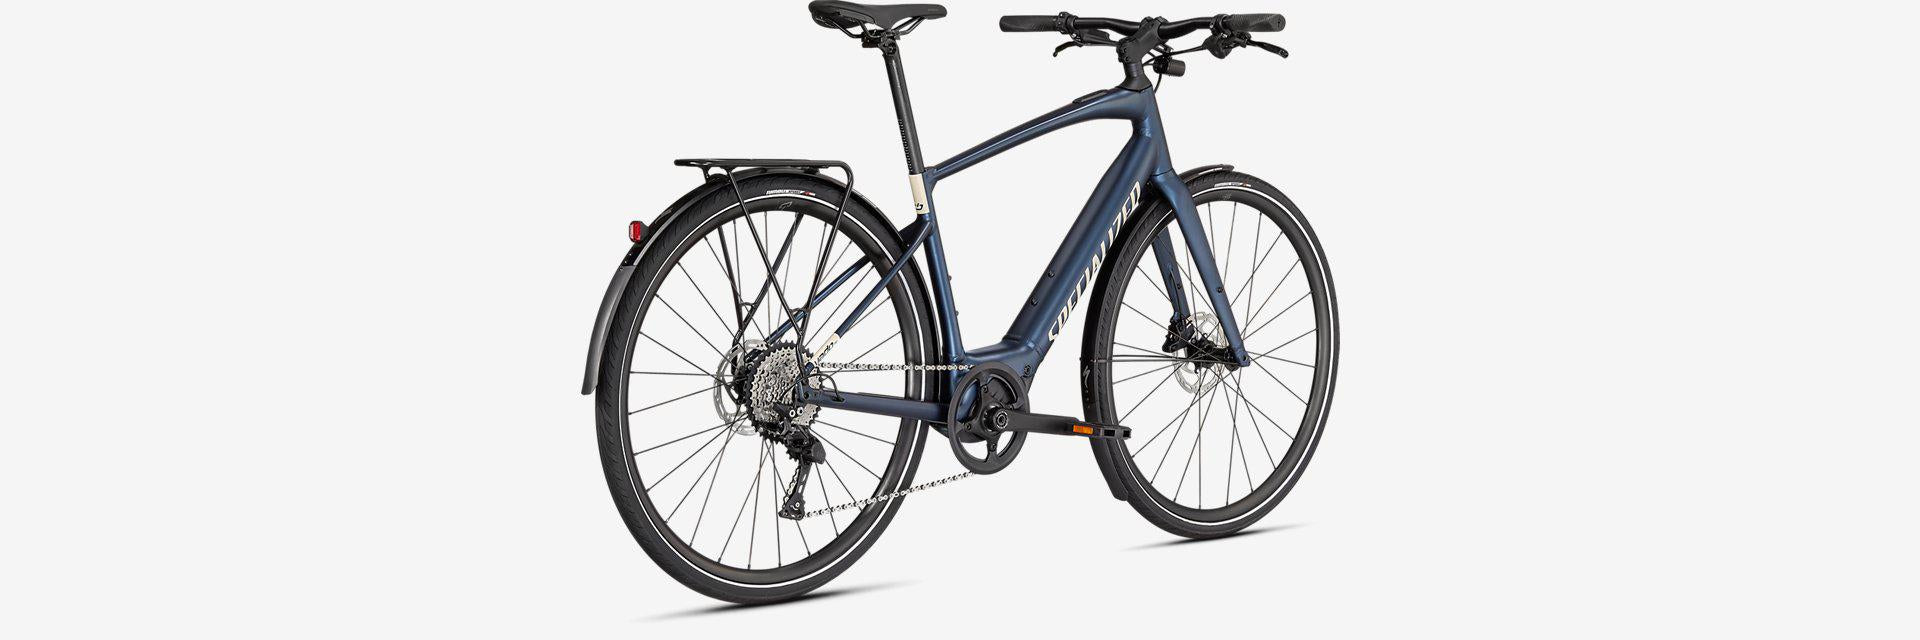 2021 Specialized Vado SL 4.0 EQ Dove Gray